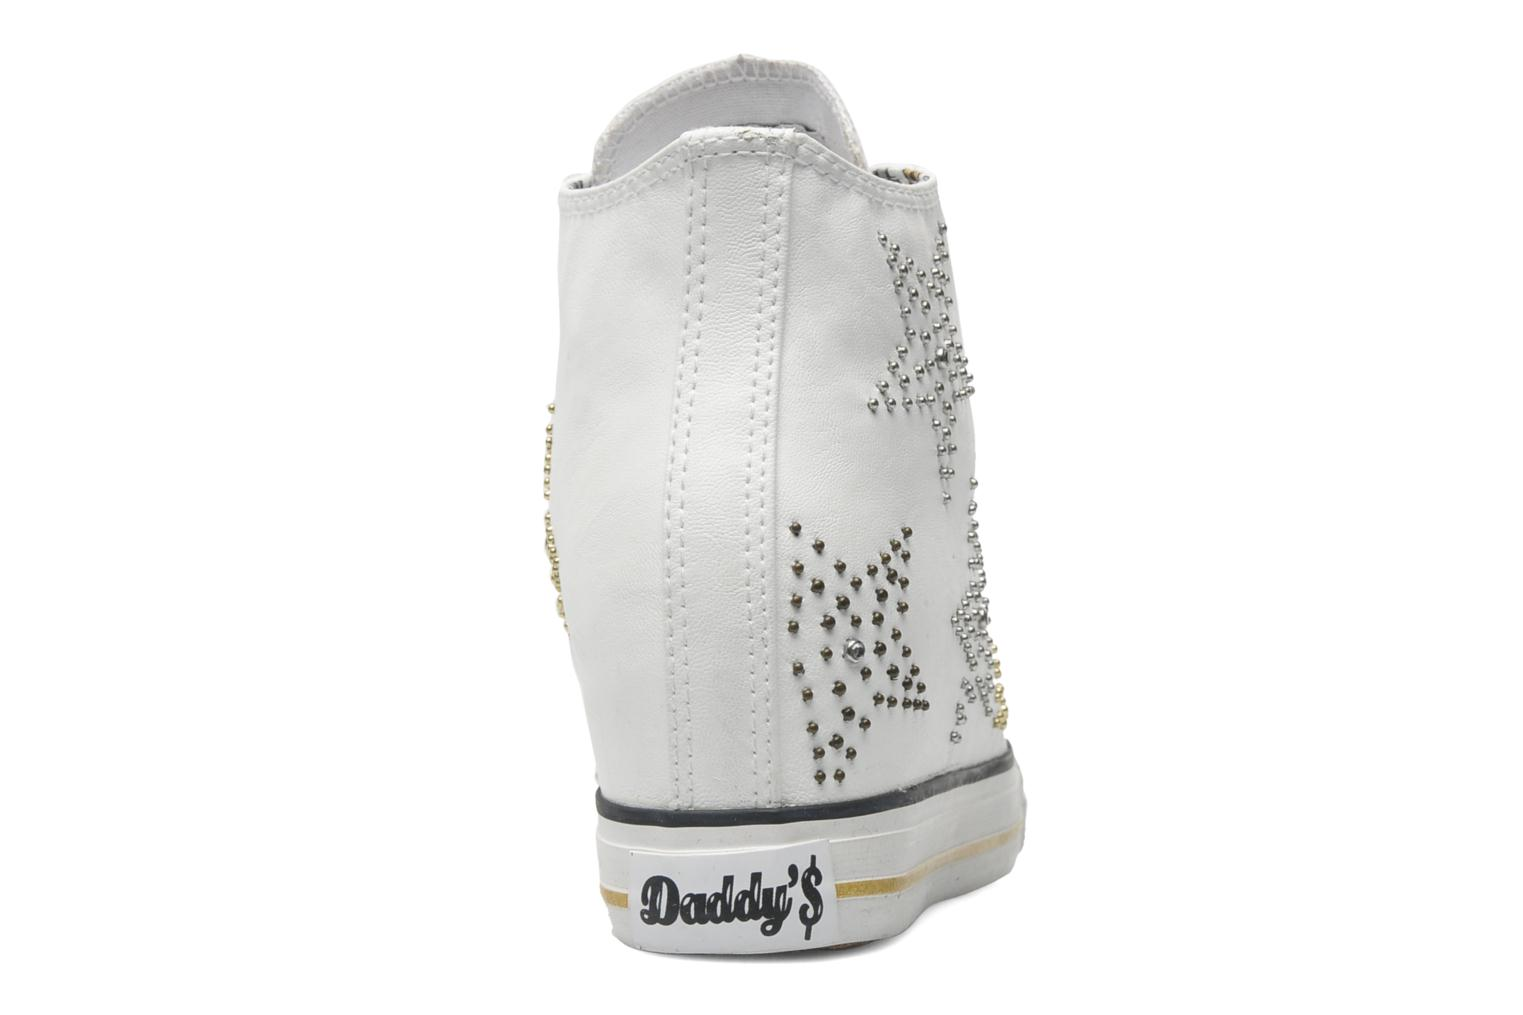 Daddy's money - Stargazing 39419 White